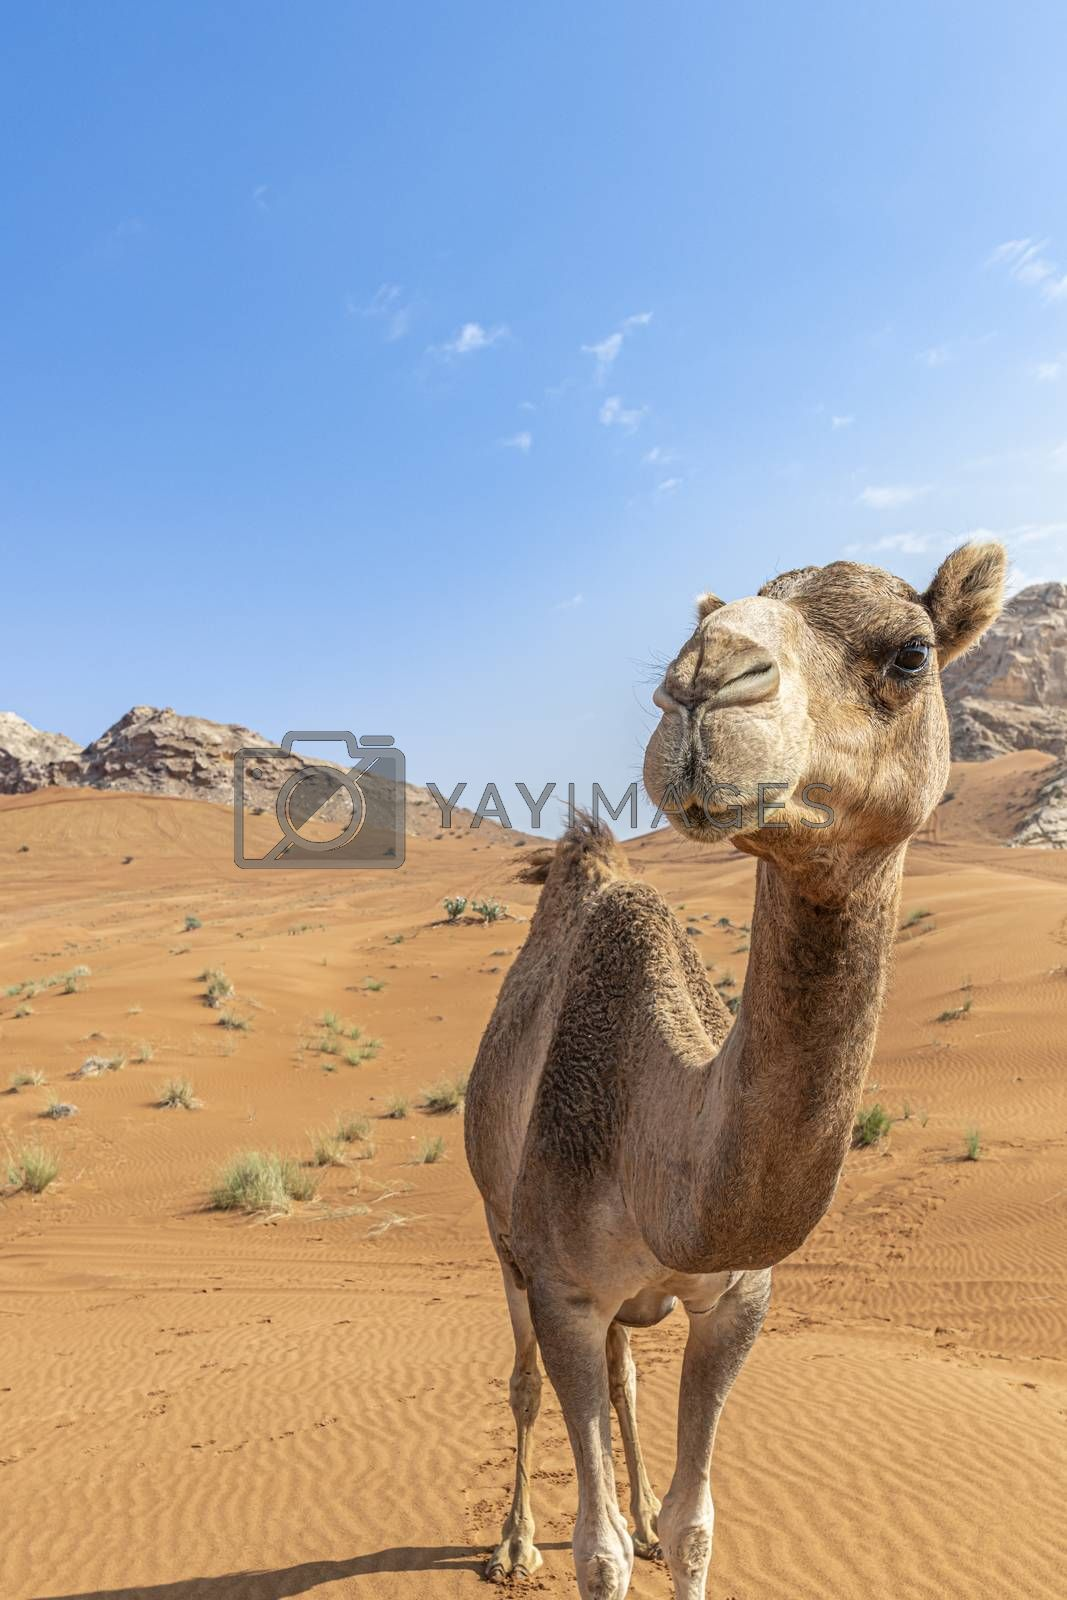 Camel in the desert looking at the camera with copy space in the sky